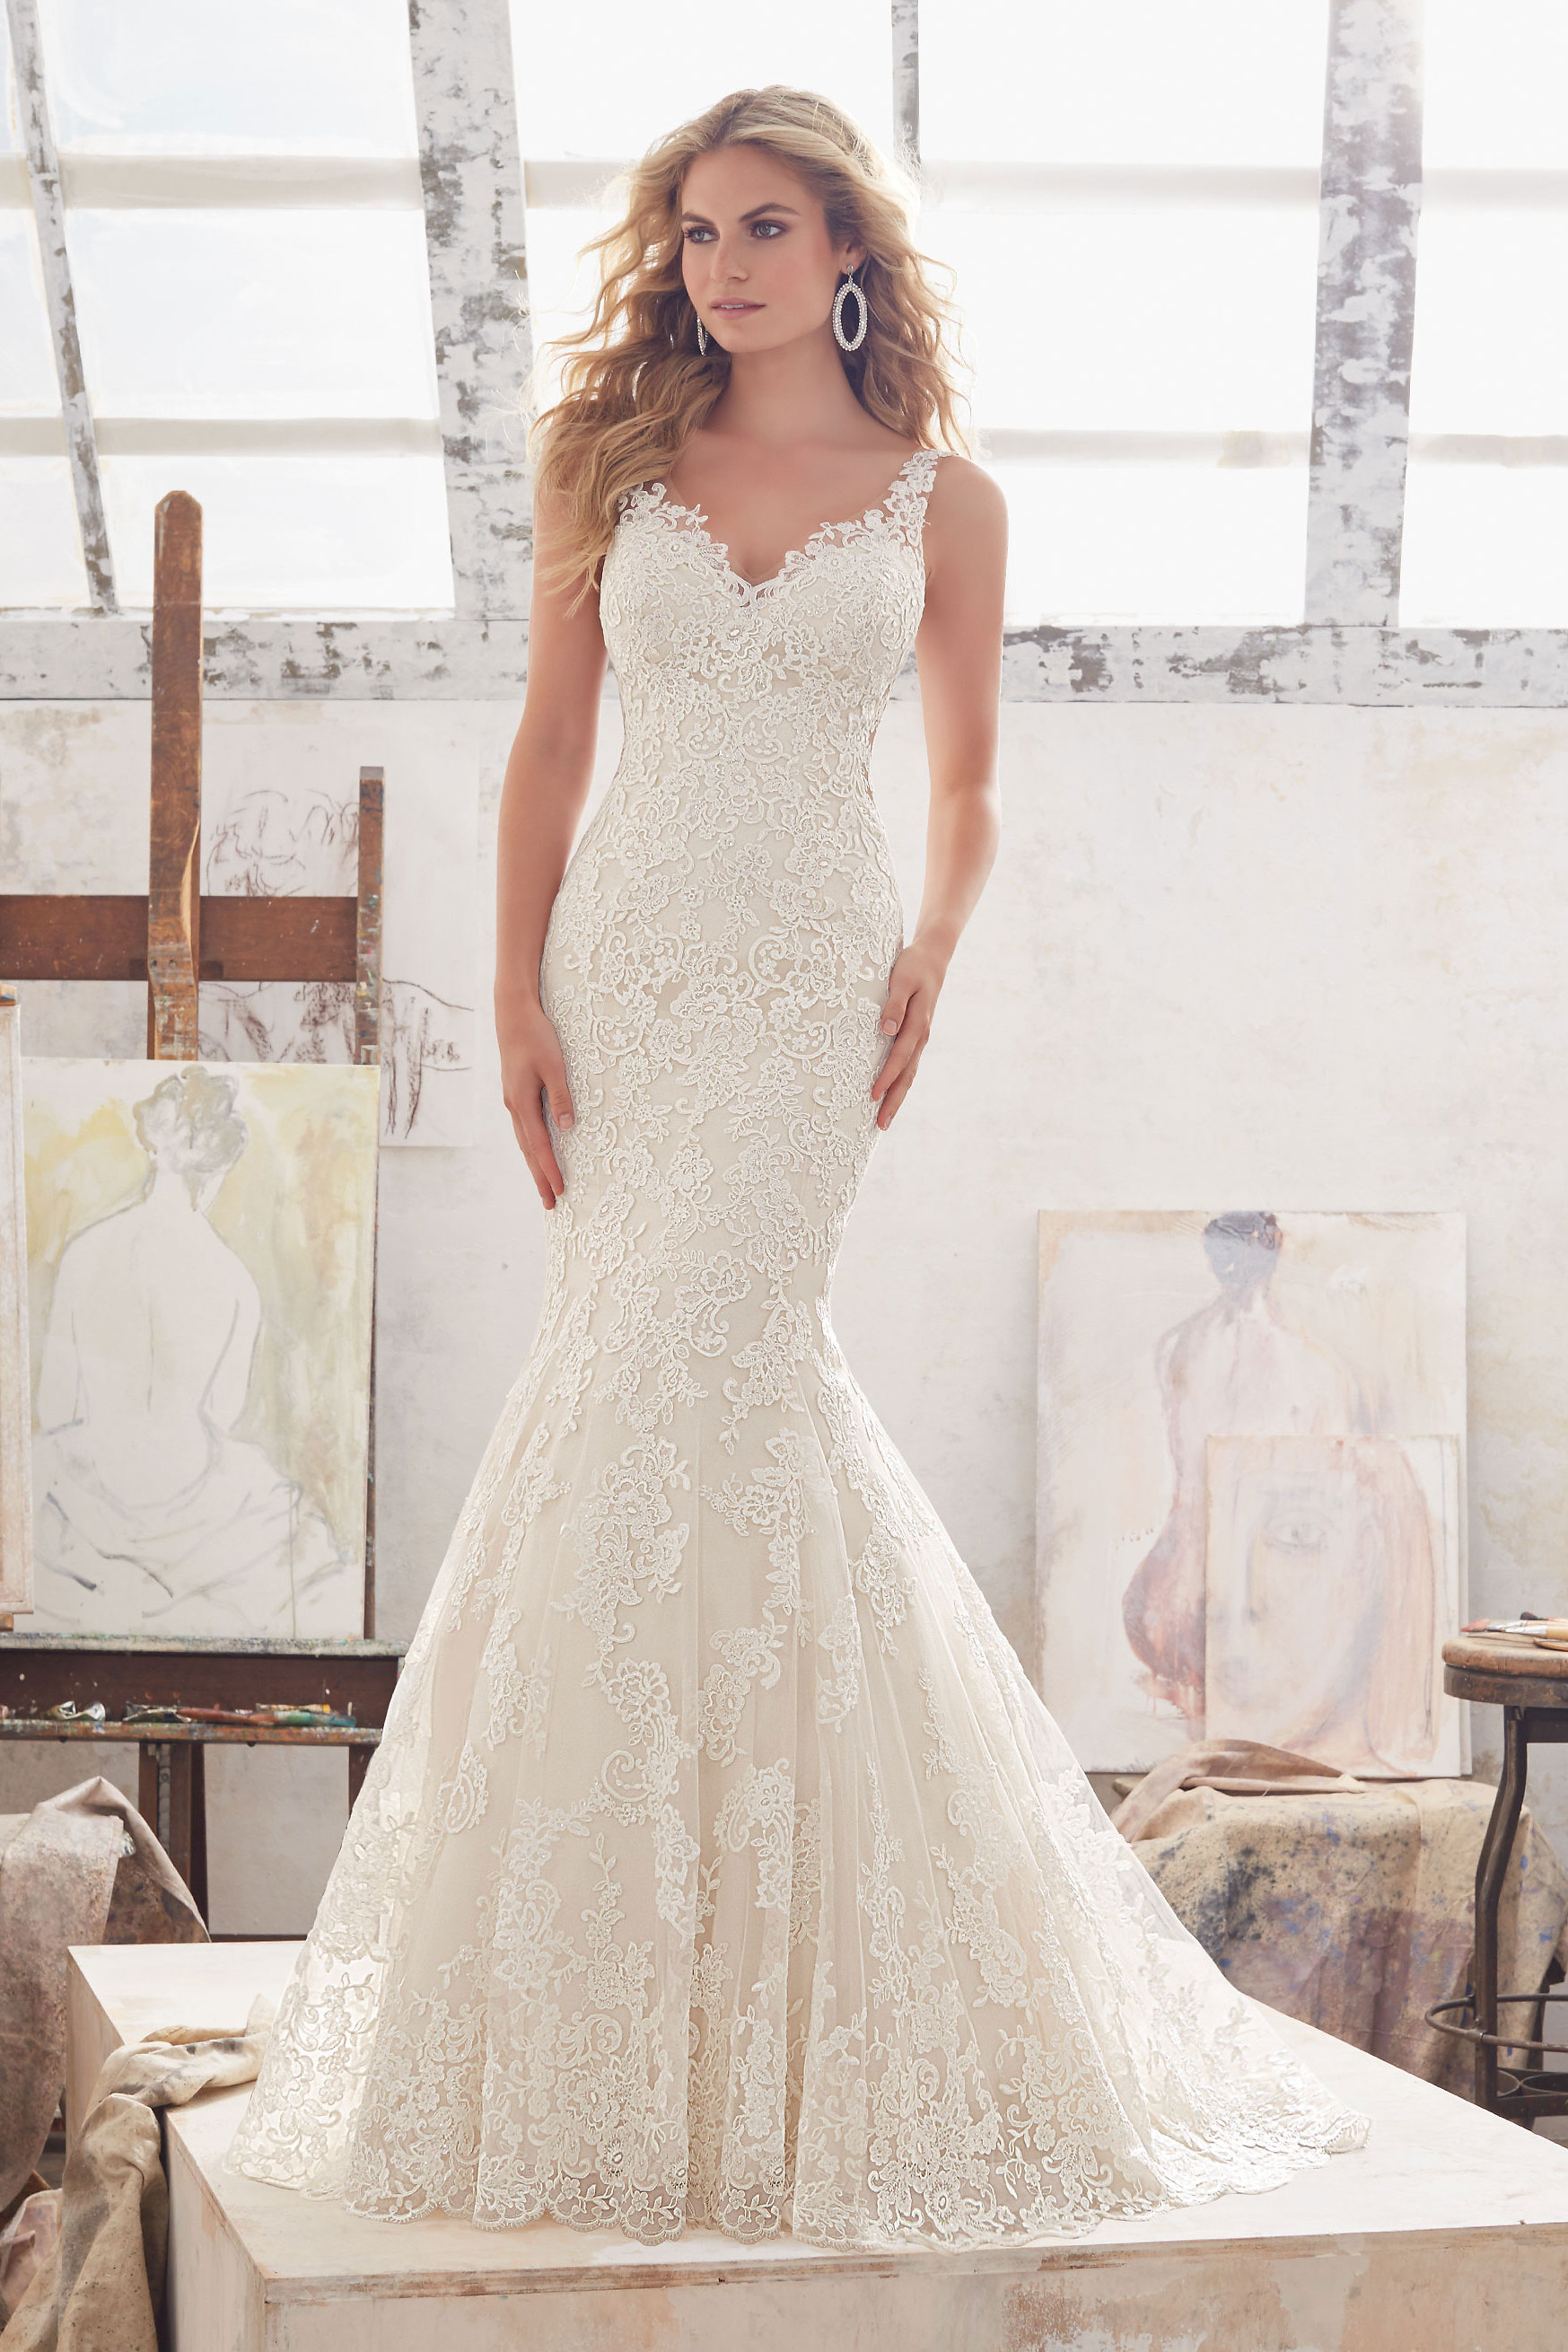 Wedding Dresses In Coral Gables. wedding dresses in coral gables fl ...